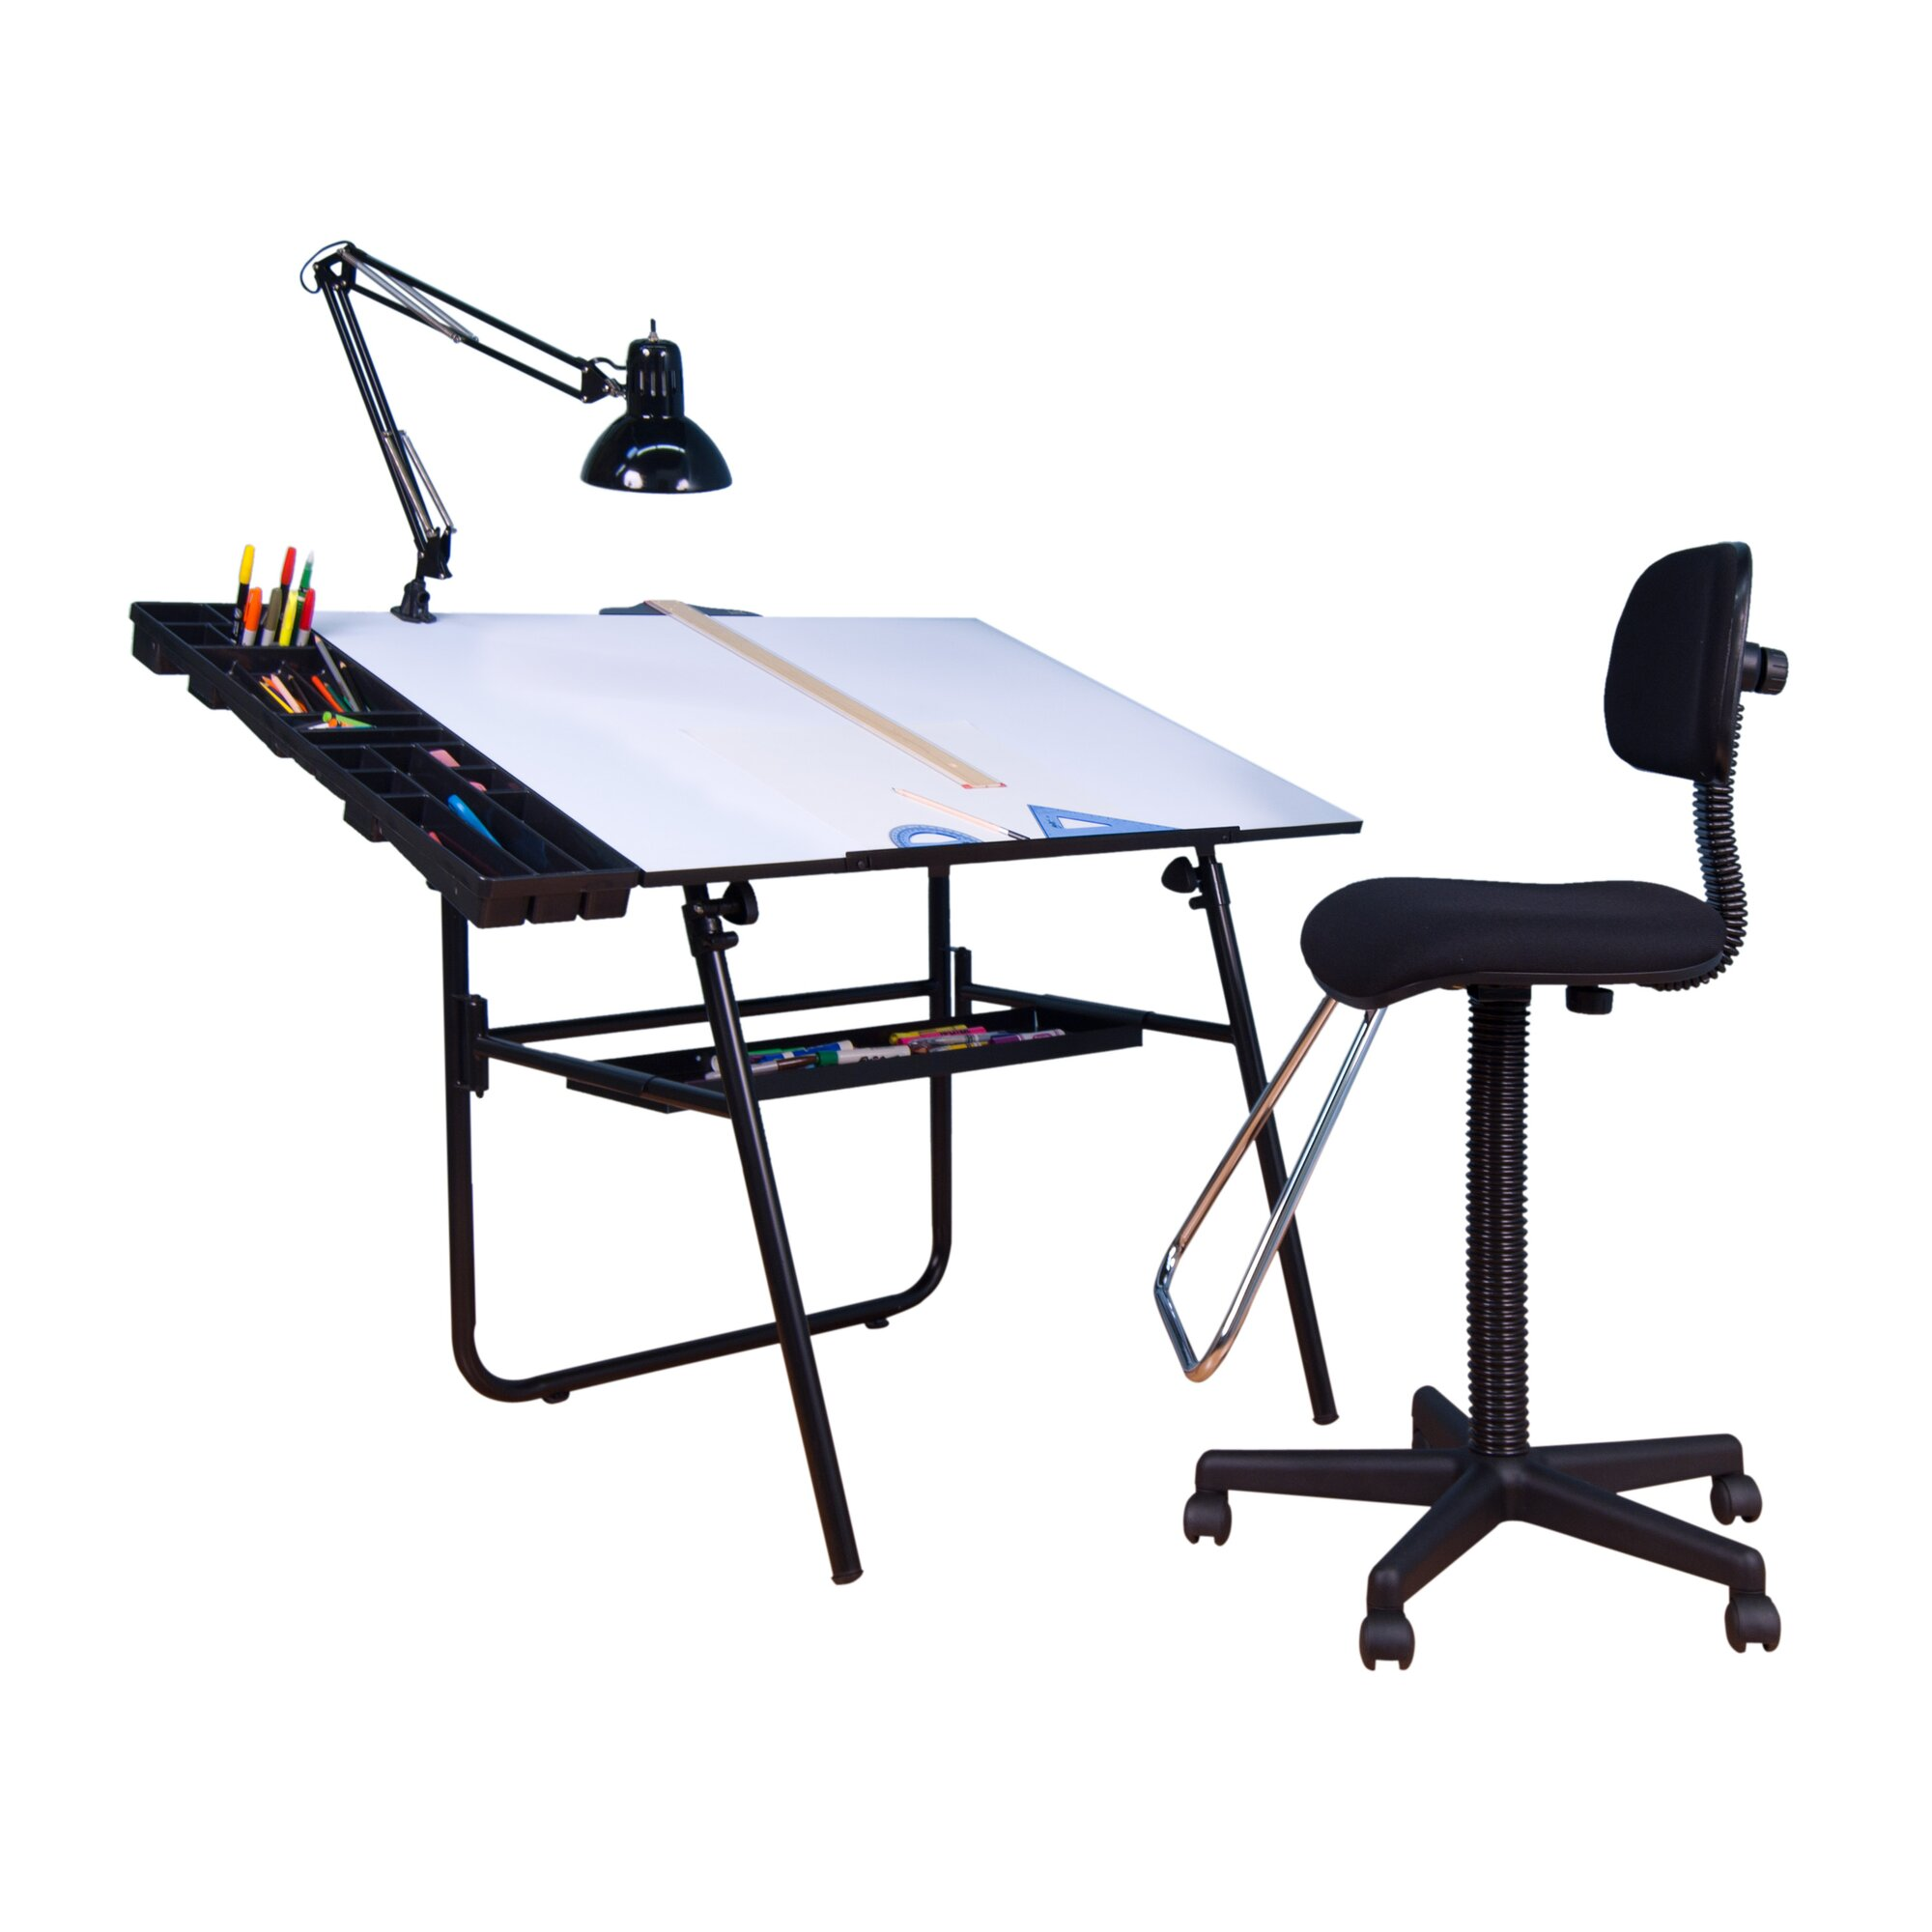 Studio Designs 4 Piece Ultima Drafting Table Set amp Reviews  : 4PieceUltimaDraftingTableSet from www.wayfair.com size 2000 x 2000 jpeg 158kB